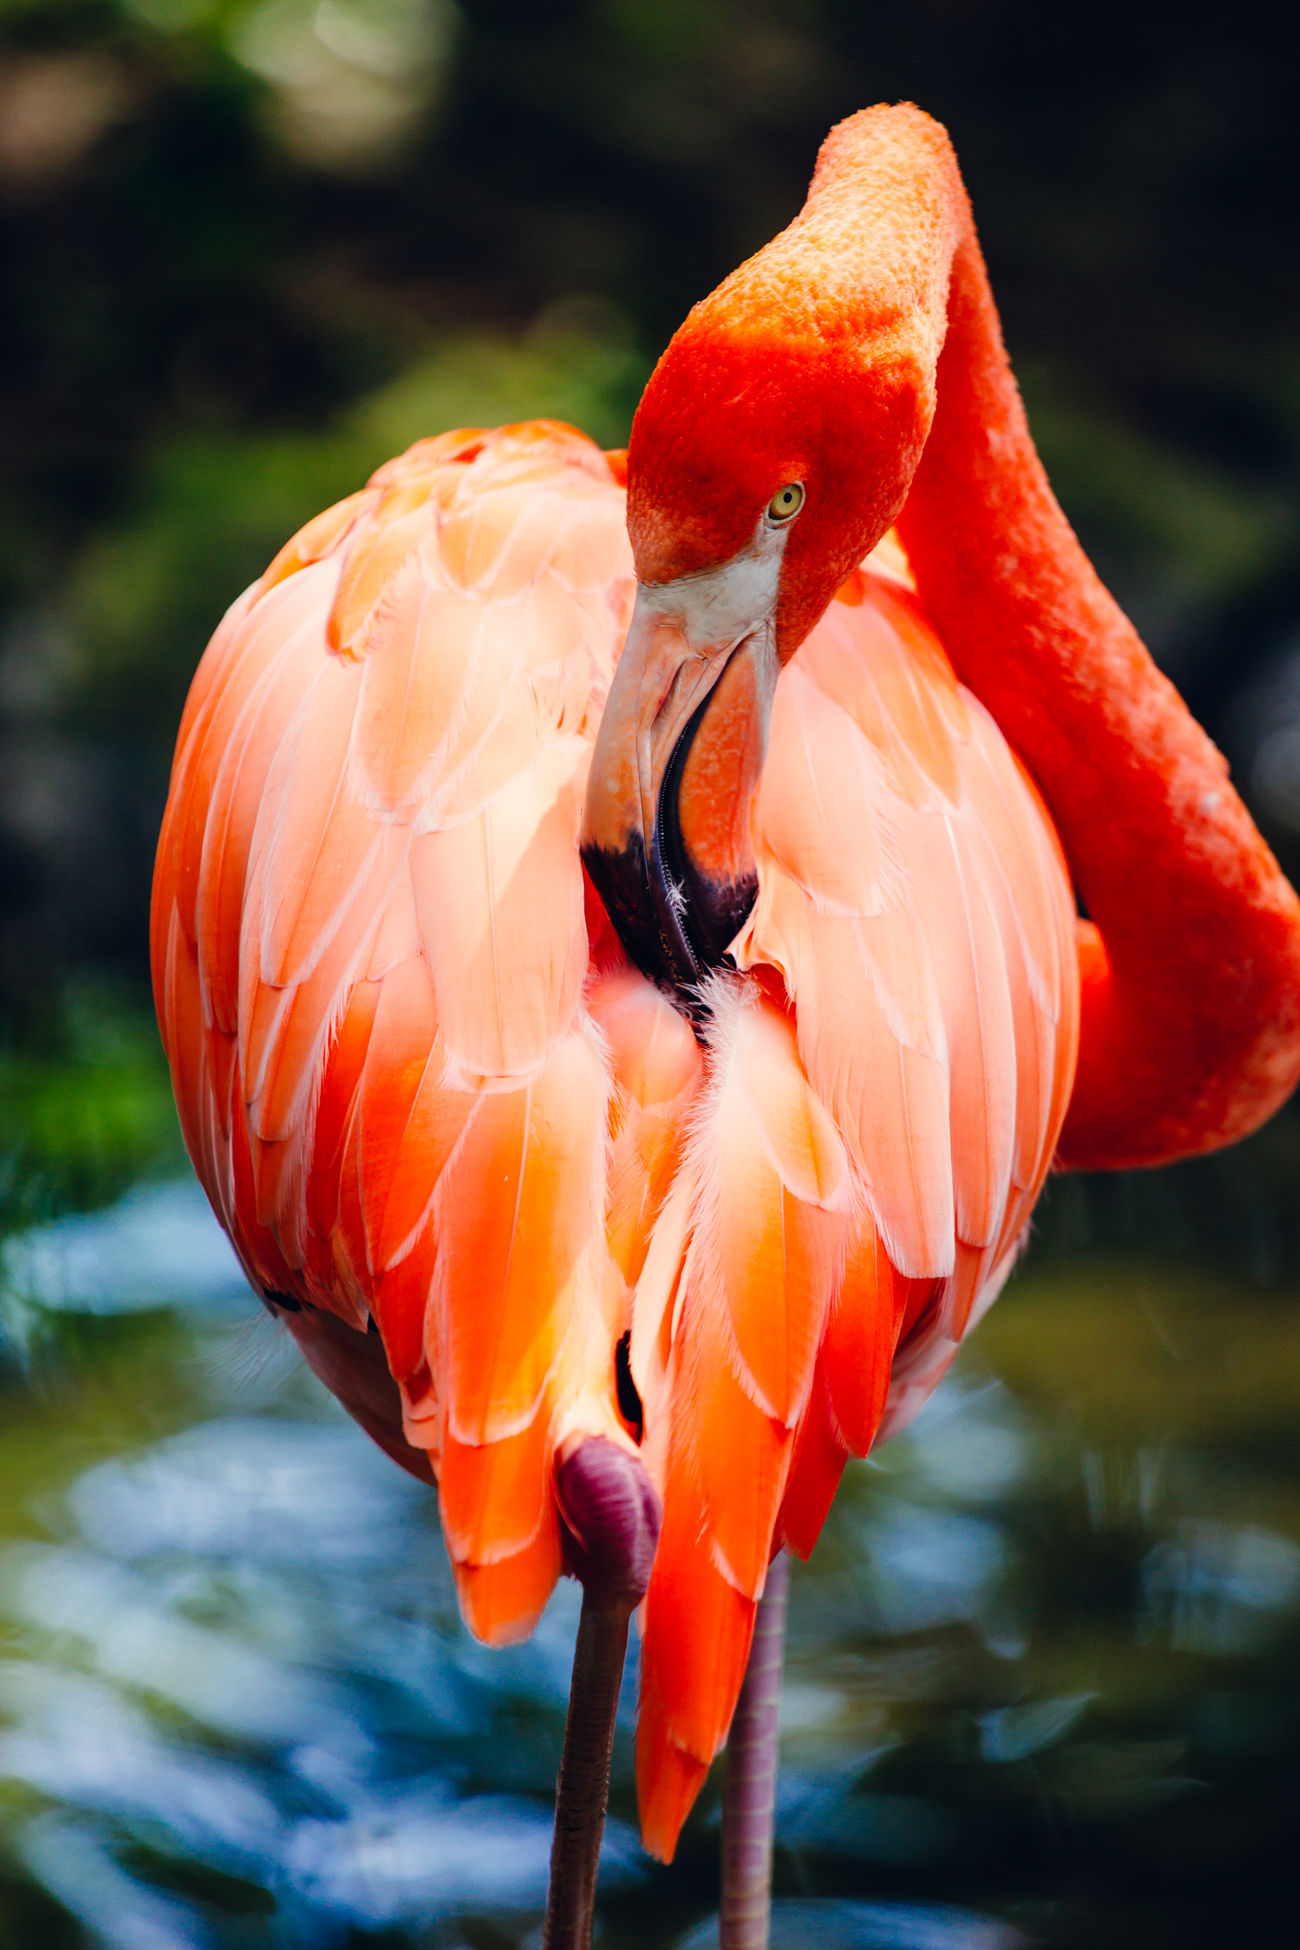 A pink red flamingo cleaning its feathers, looking into the camera. Bird Exotic Flamingo Nature One Animal Pink Pink Color Portrait Rosy Tropical Wildlife